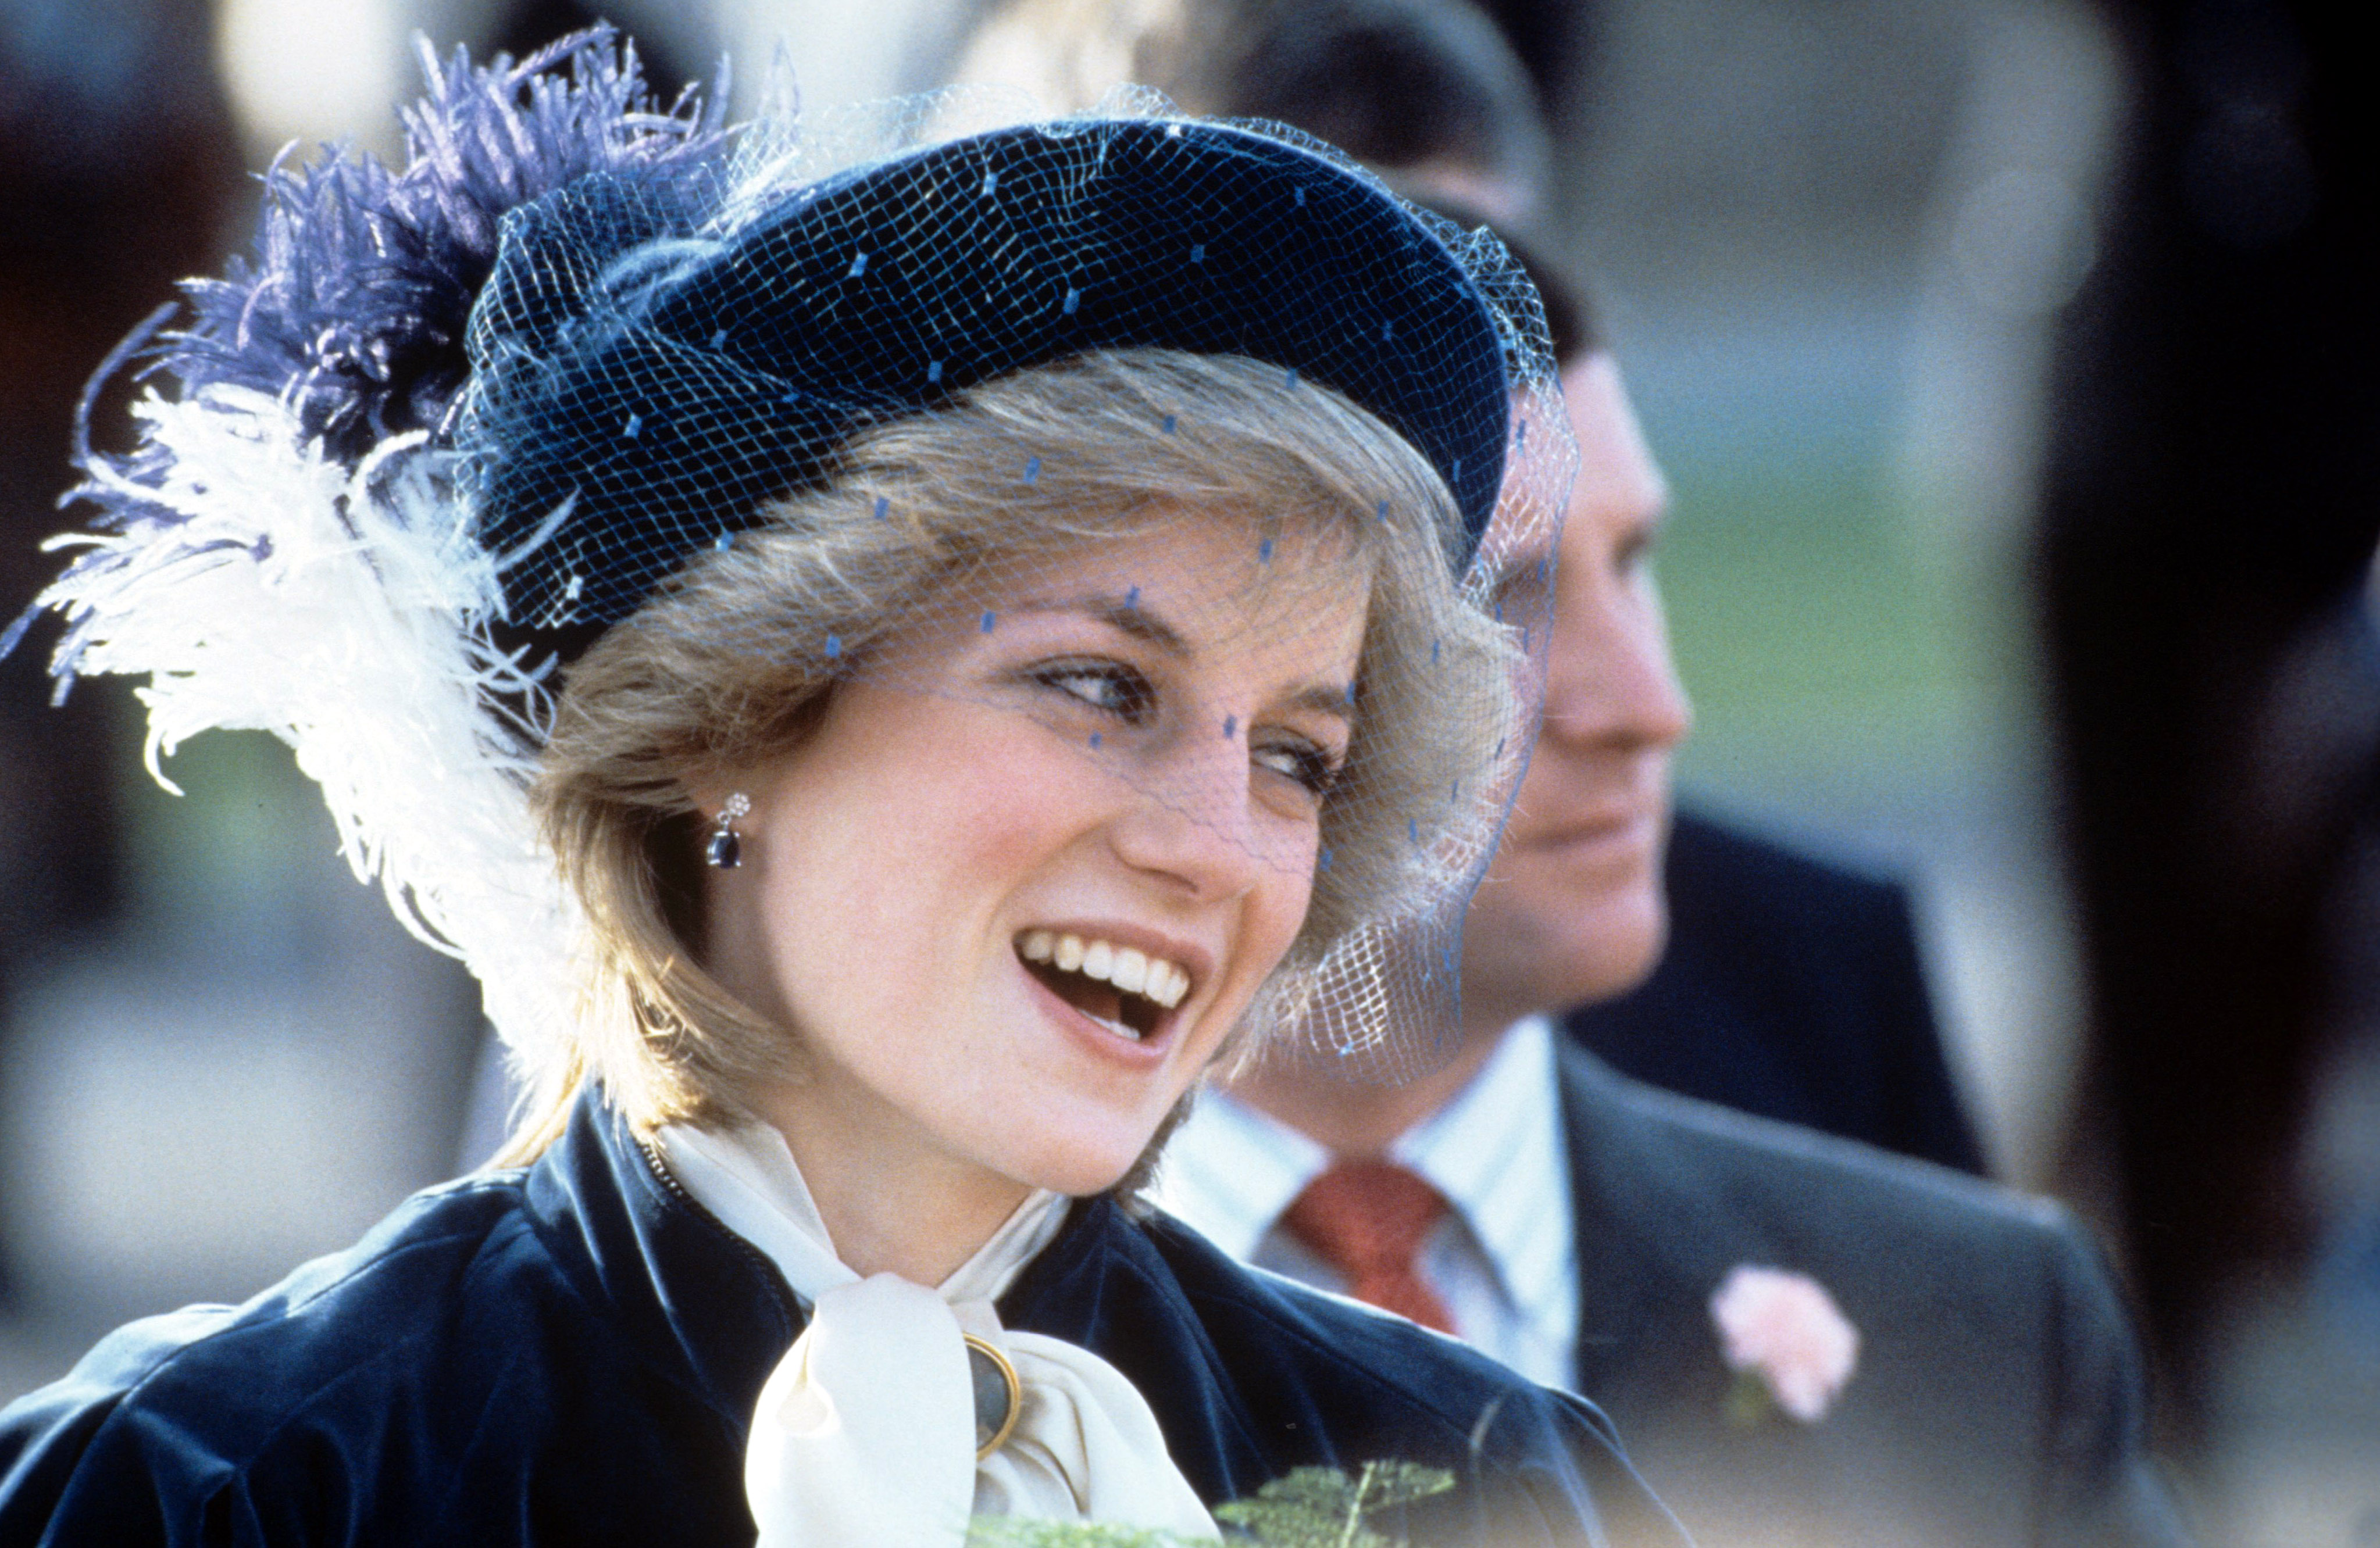 'The Crown' Casts Princess Diana, Confirms Season 4 Production Start in 2019